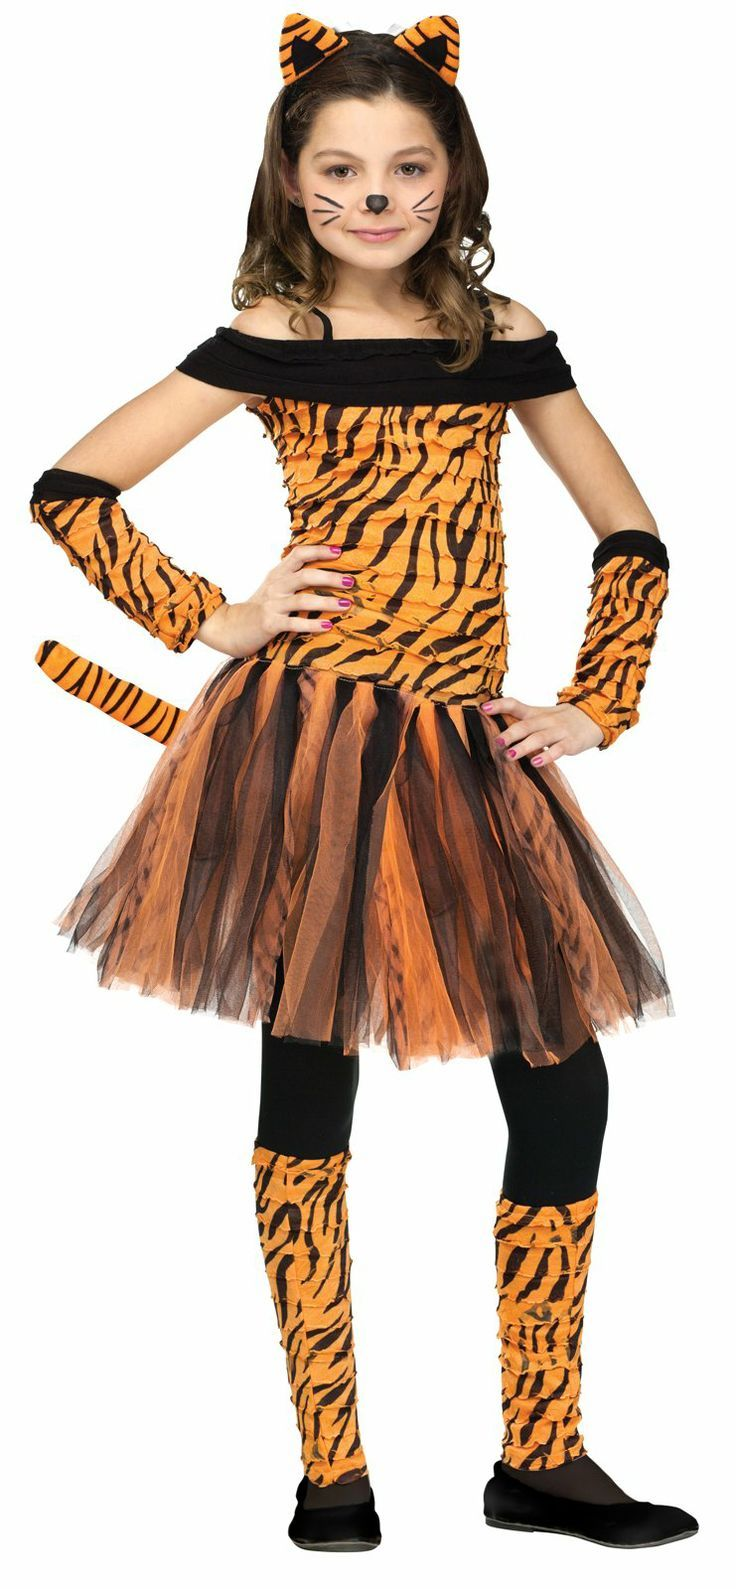 Pinterest for tiger costumes 13 year old girl halloween for Halloween costume ideas for 12 year olds